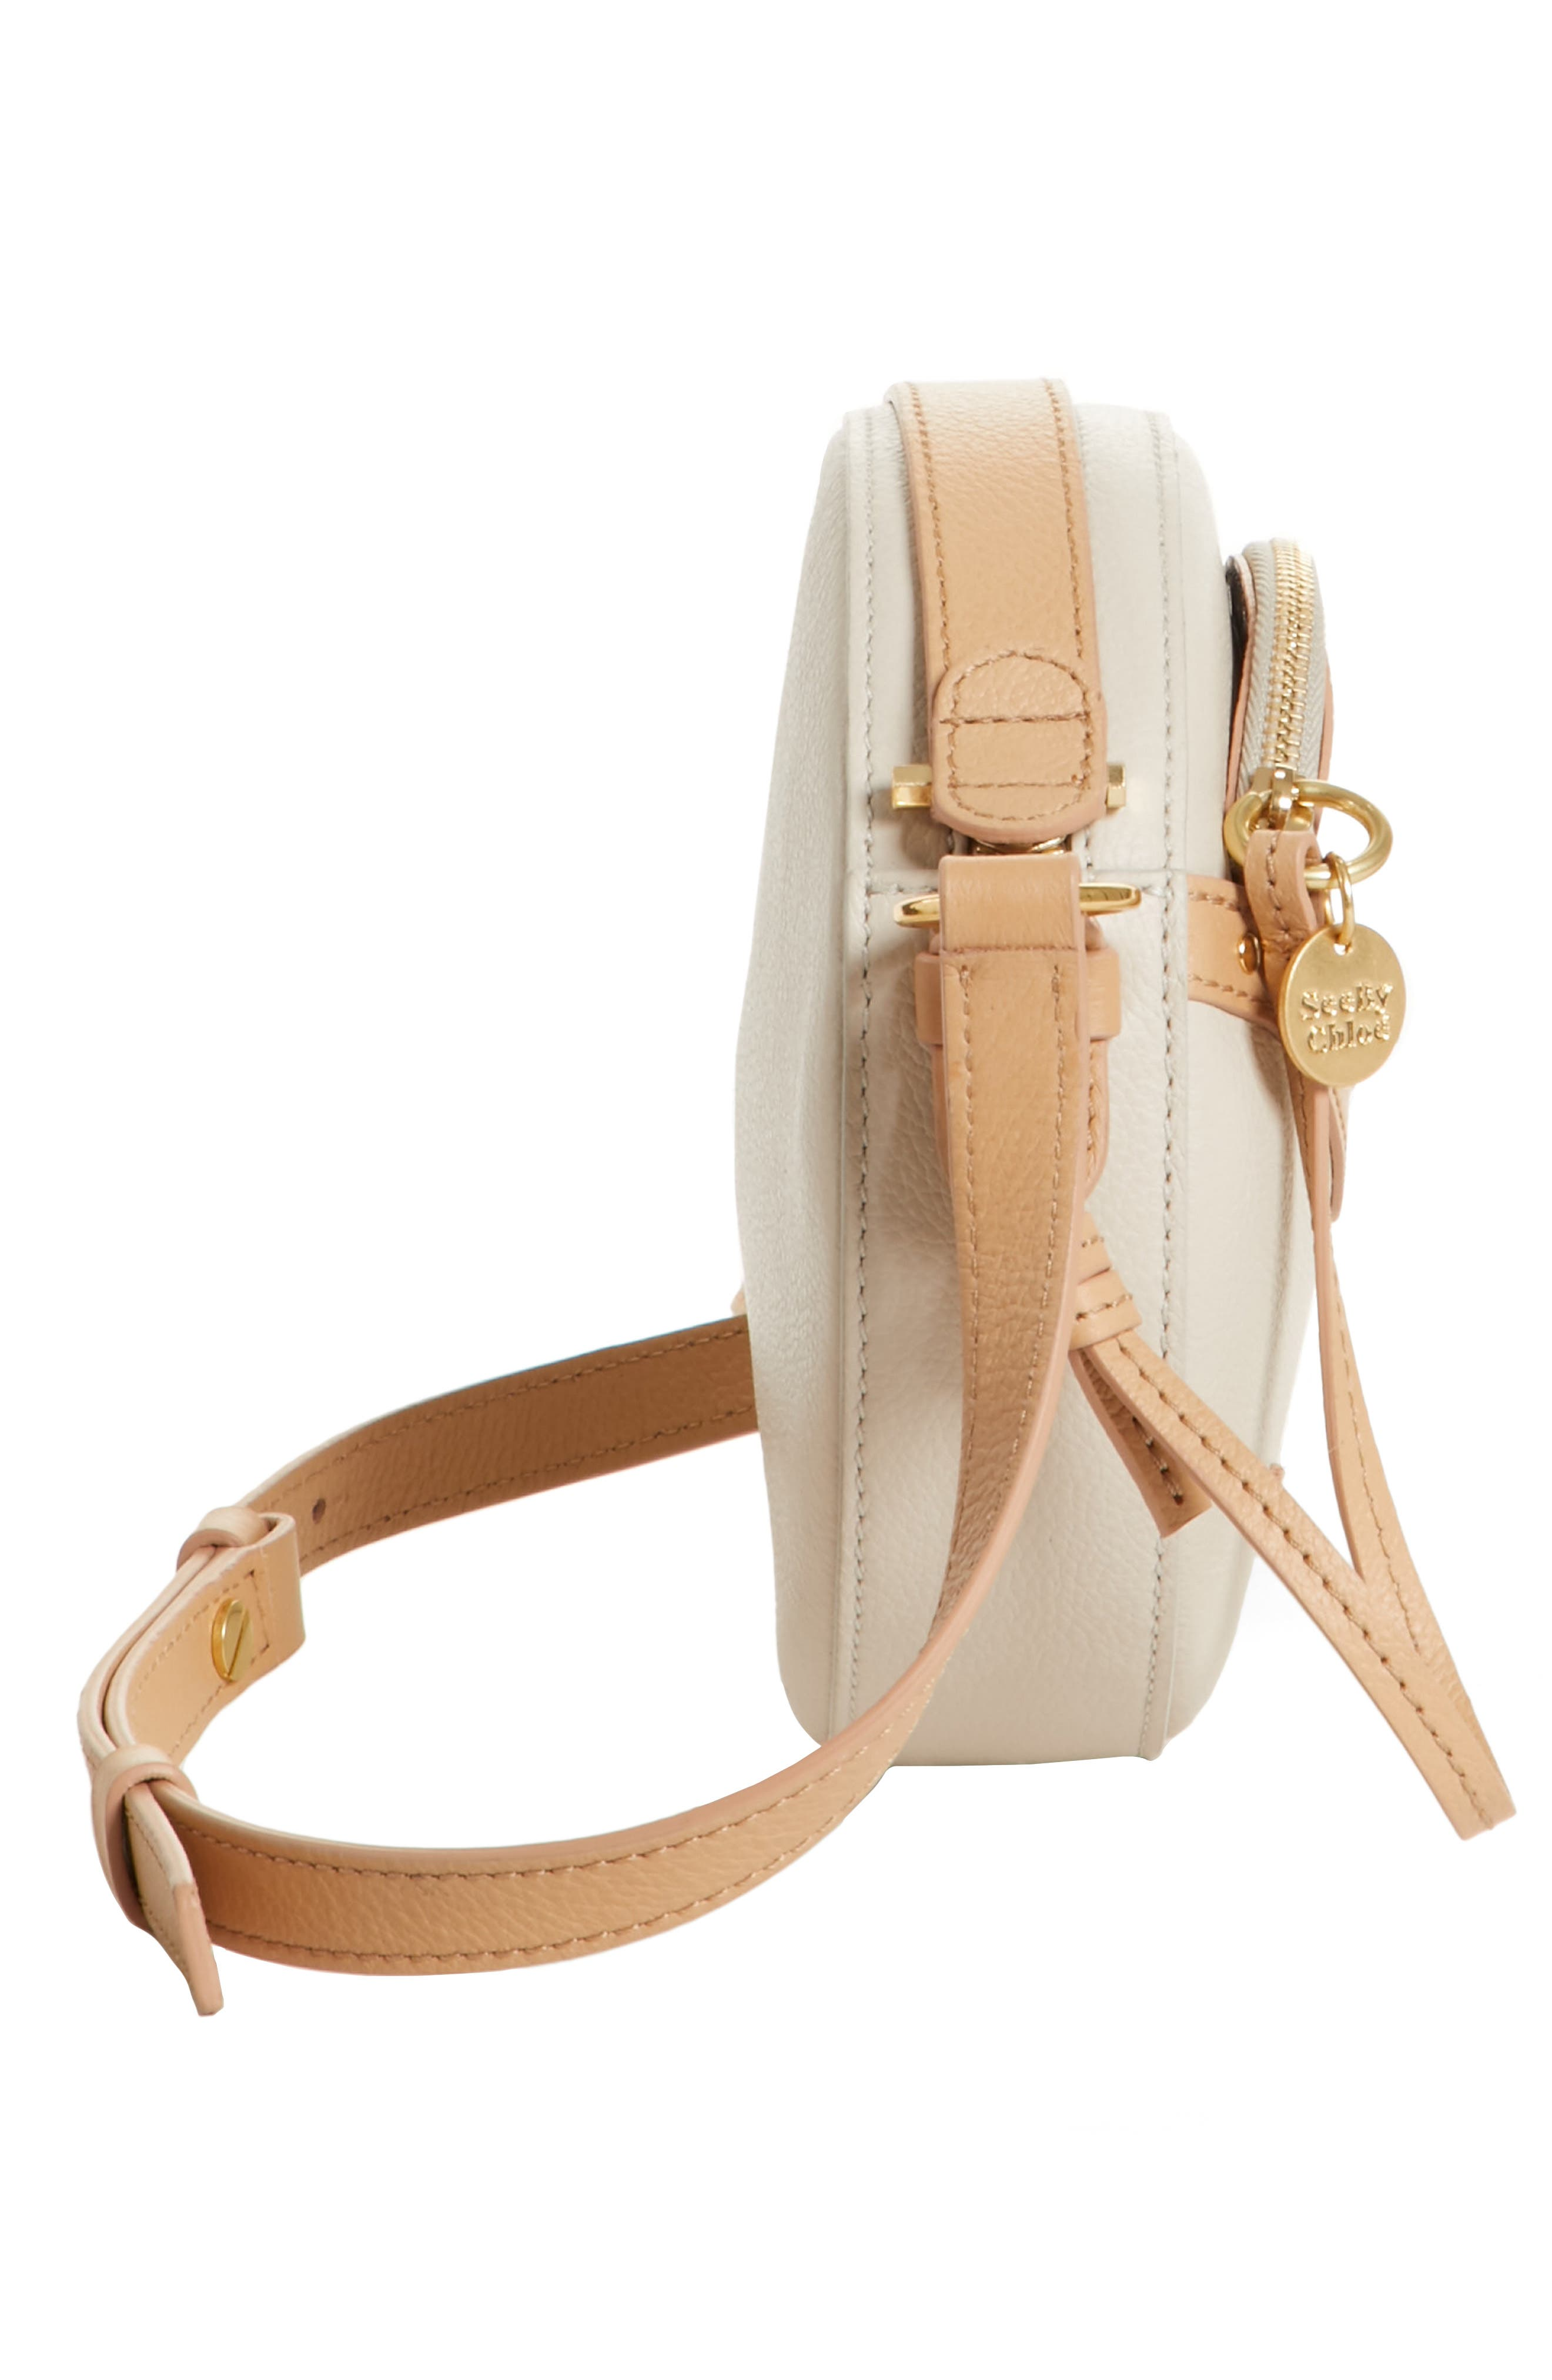 Rosy Mini Leather Crossbody Bag with Faux Snakeskin,                             Alternate thumbnail 5, color,                             Cement Beige